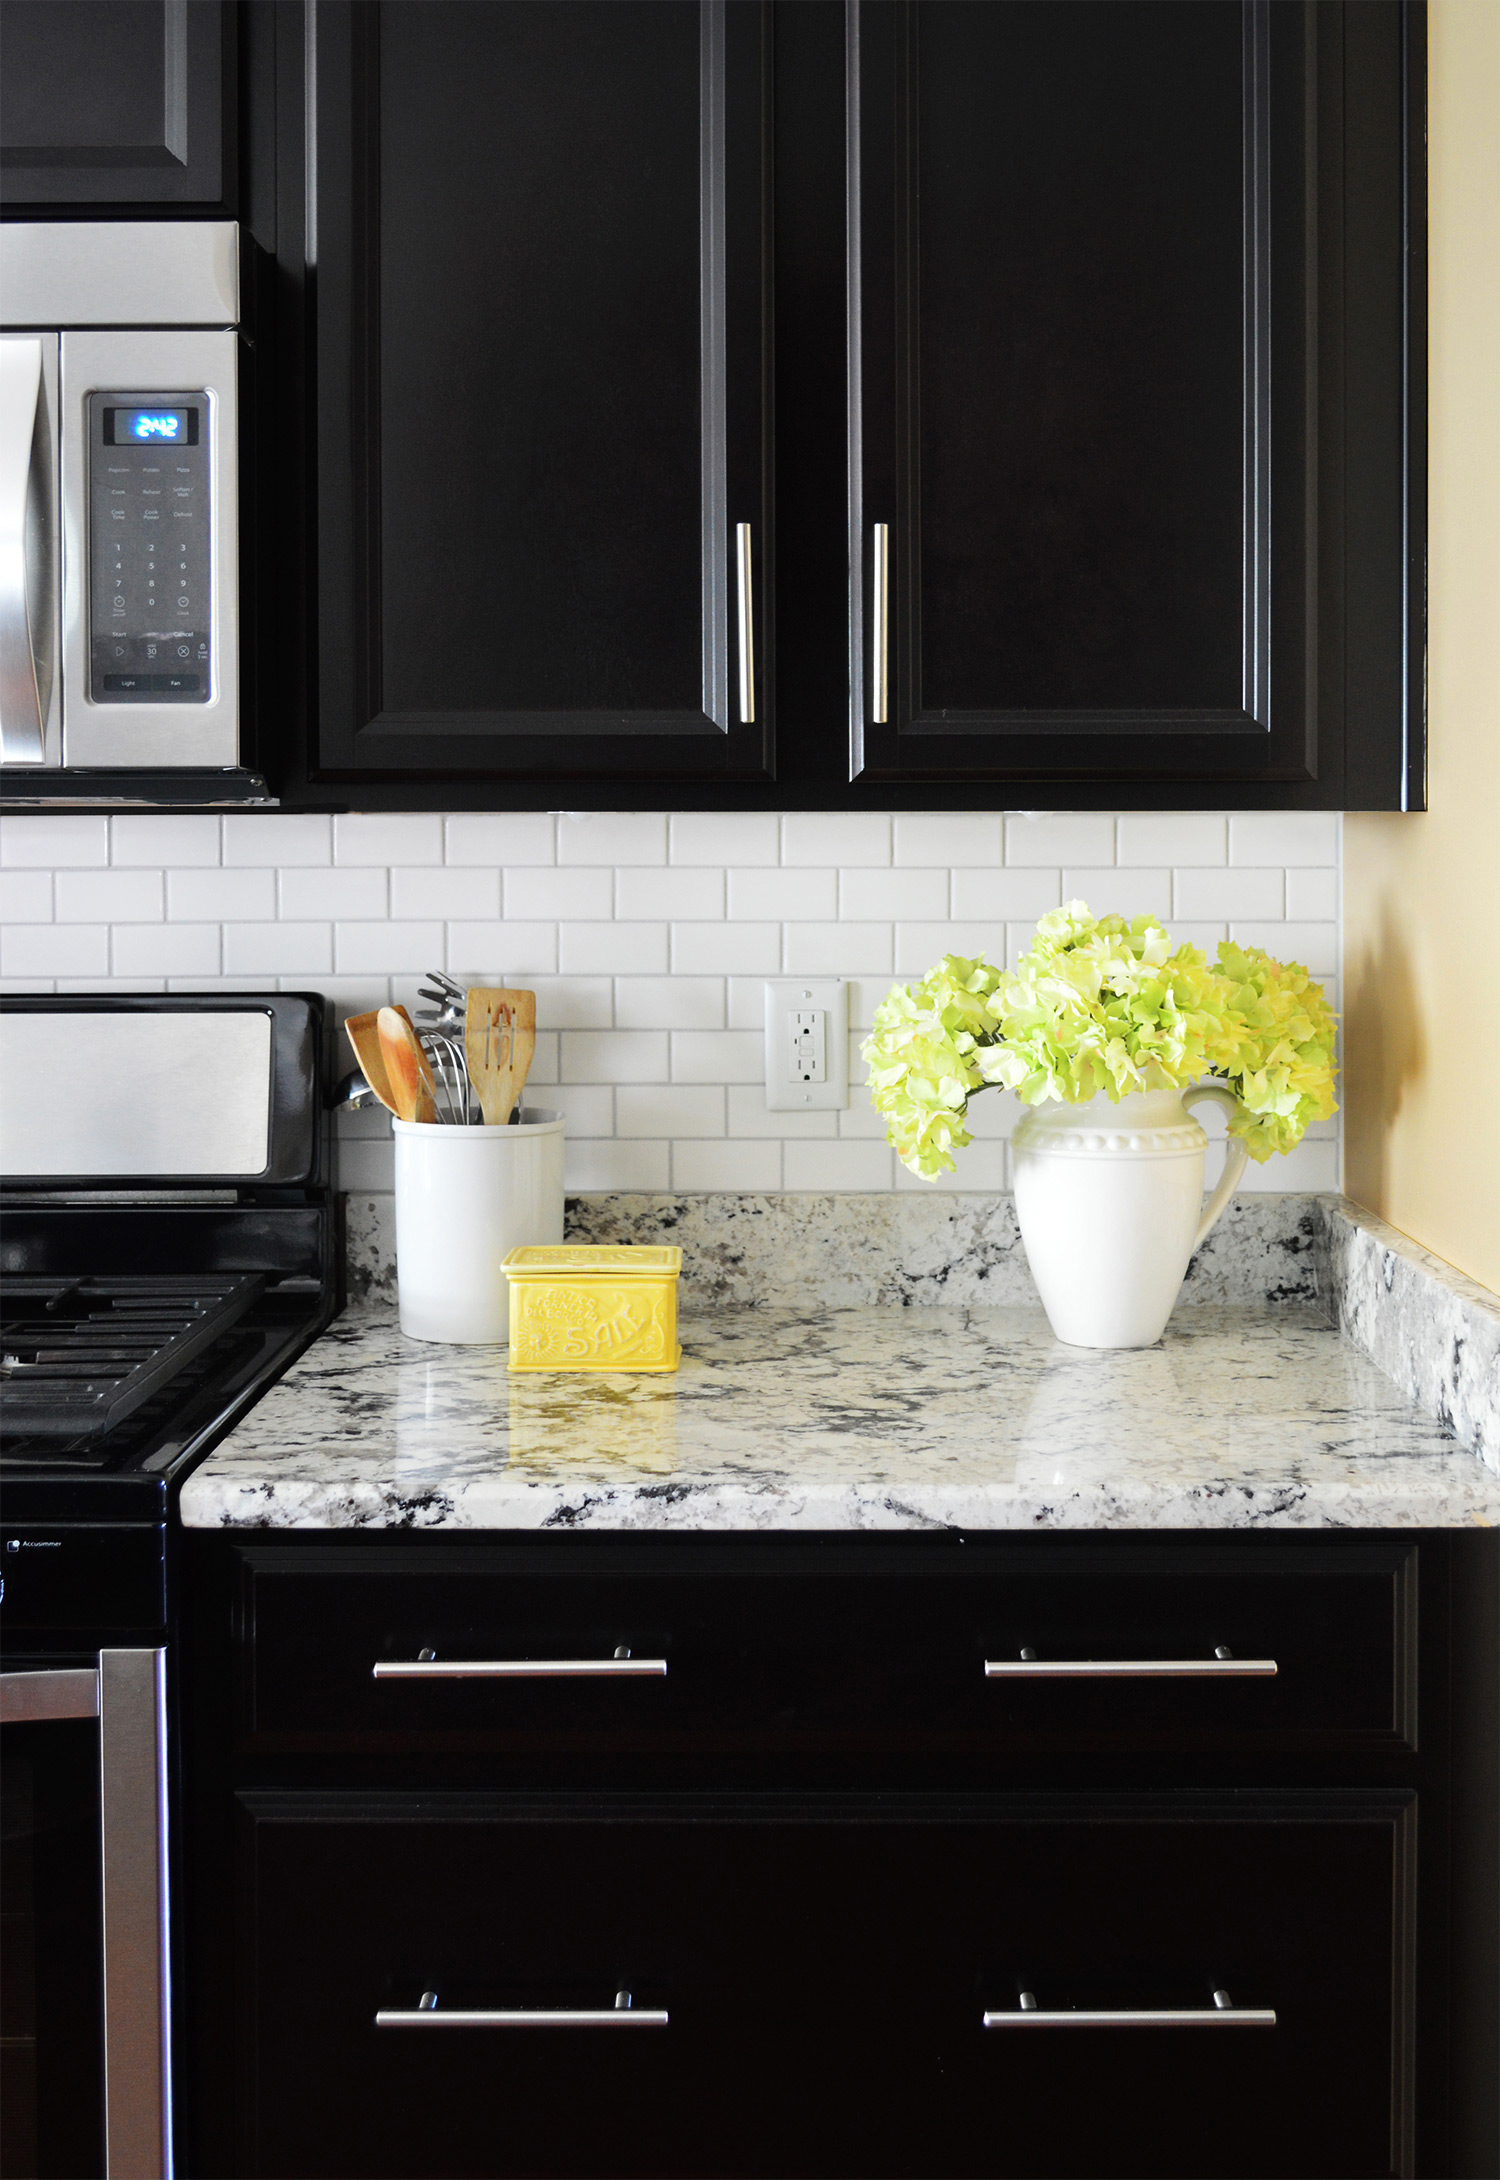 How-to-tile-a-backsplash-pics-info-even-a-video-wallpaper-wp4005382-1